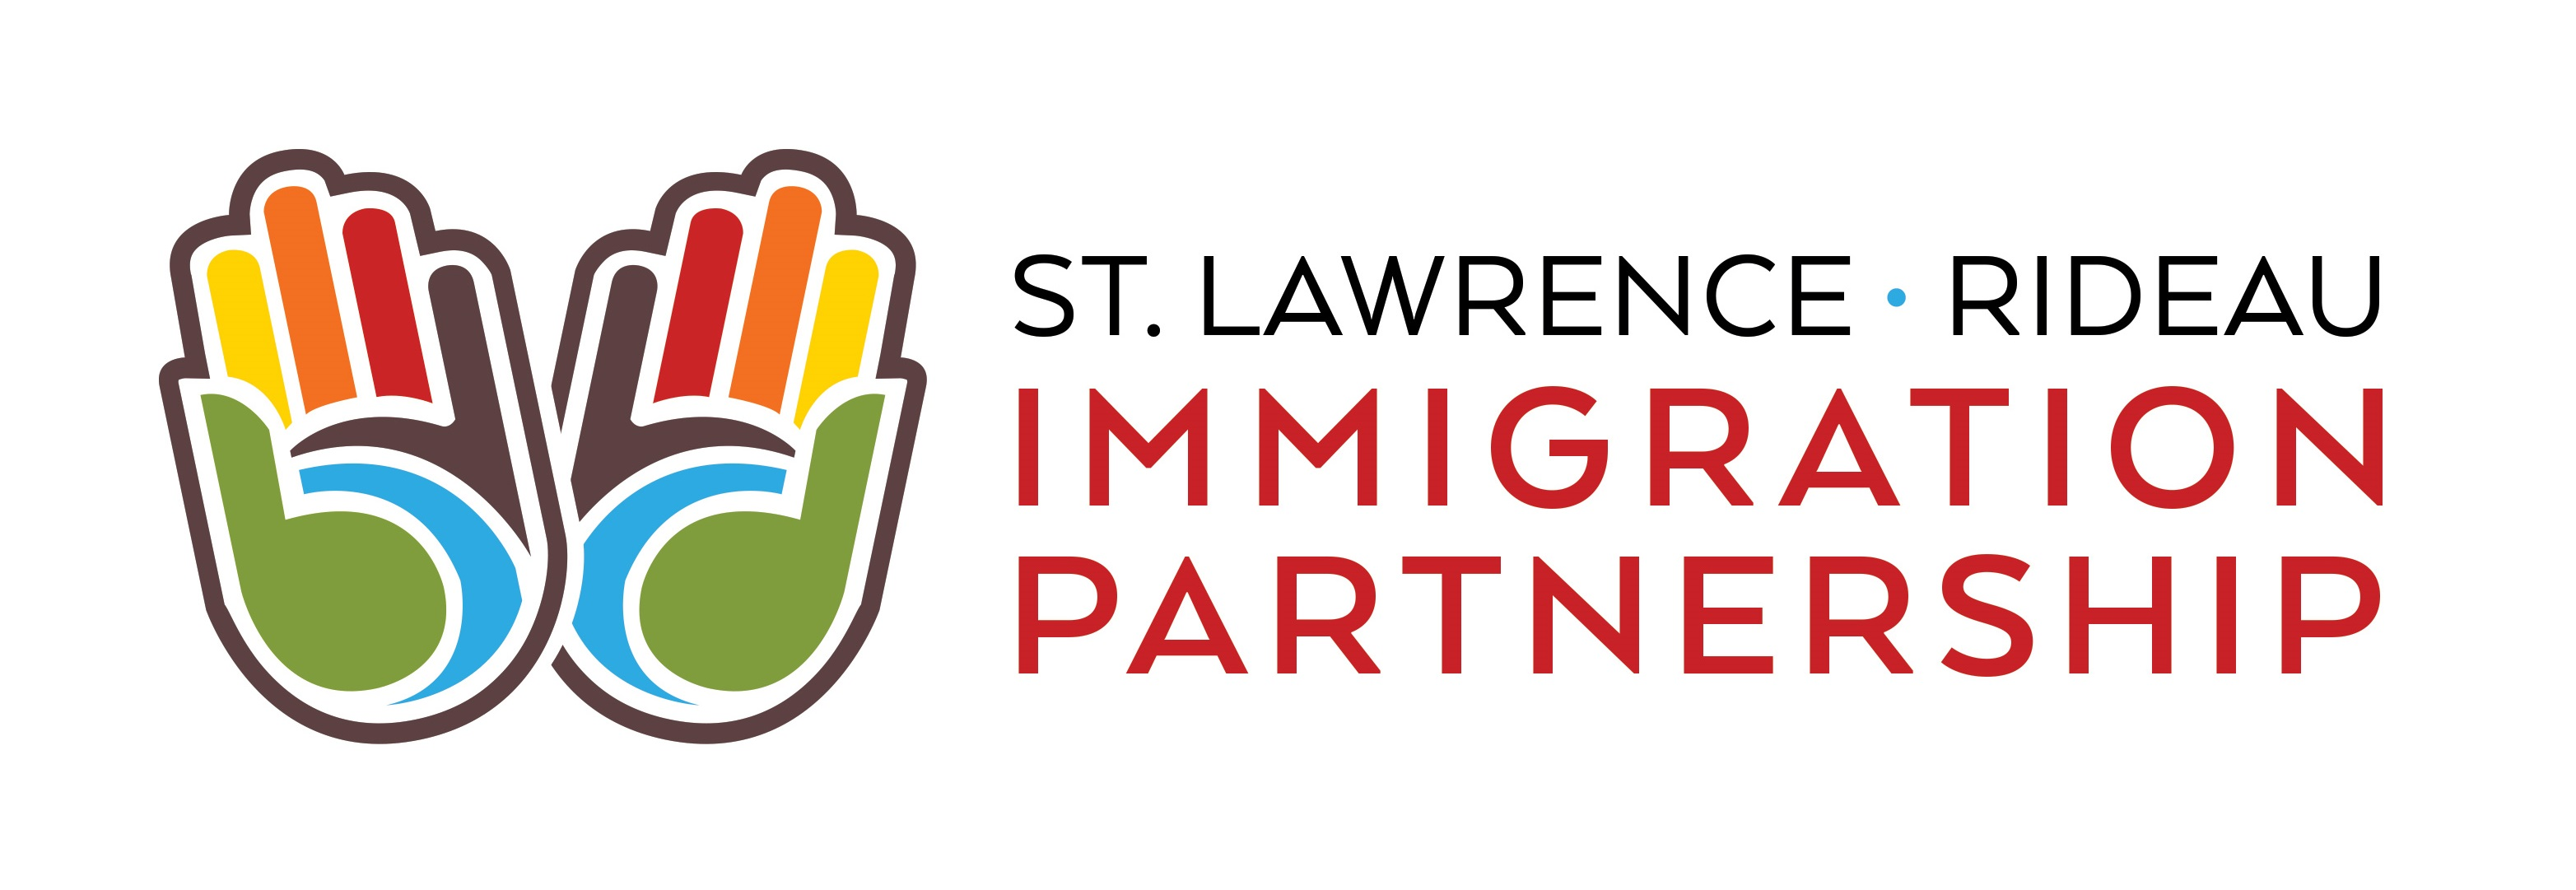 St. Lawrence-Rideau Immigration Partnership (